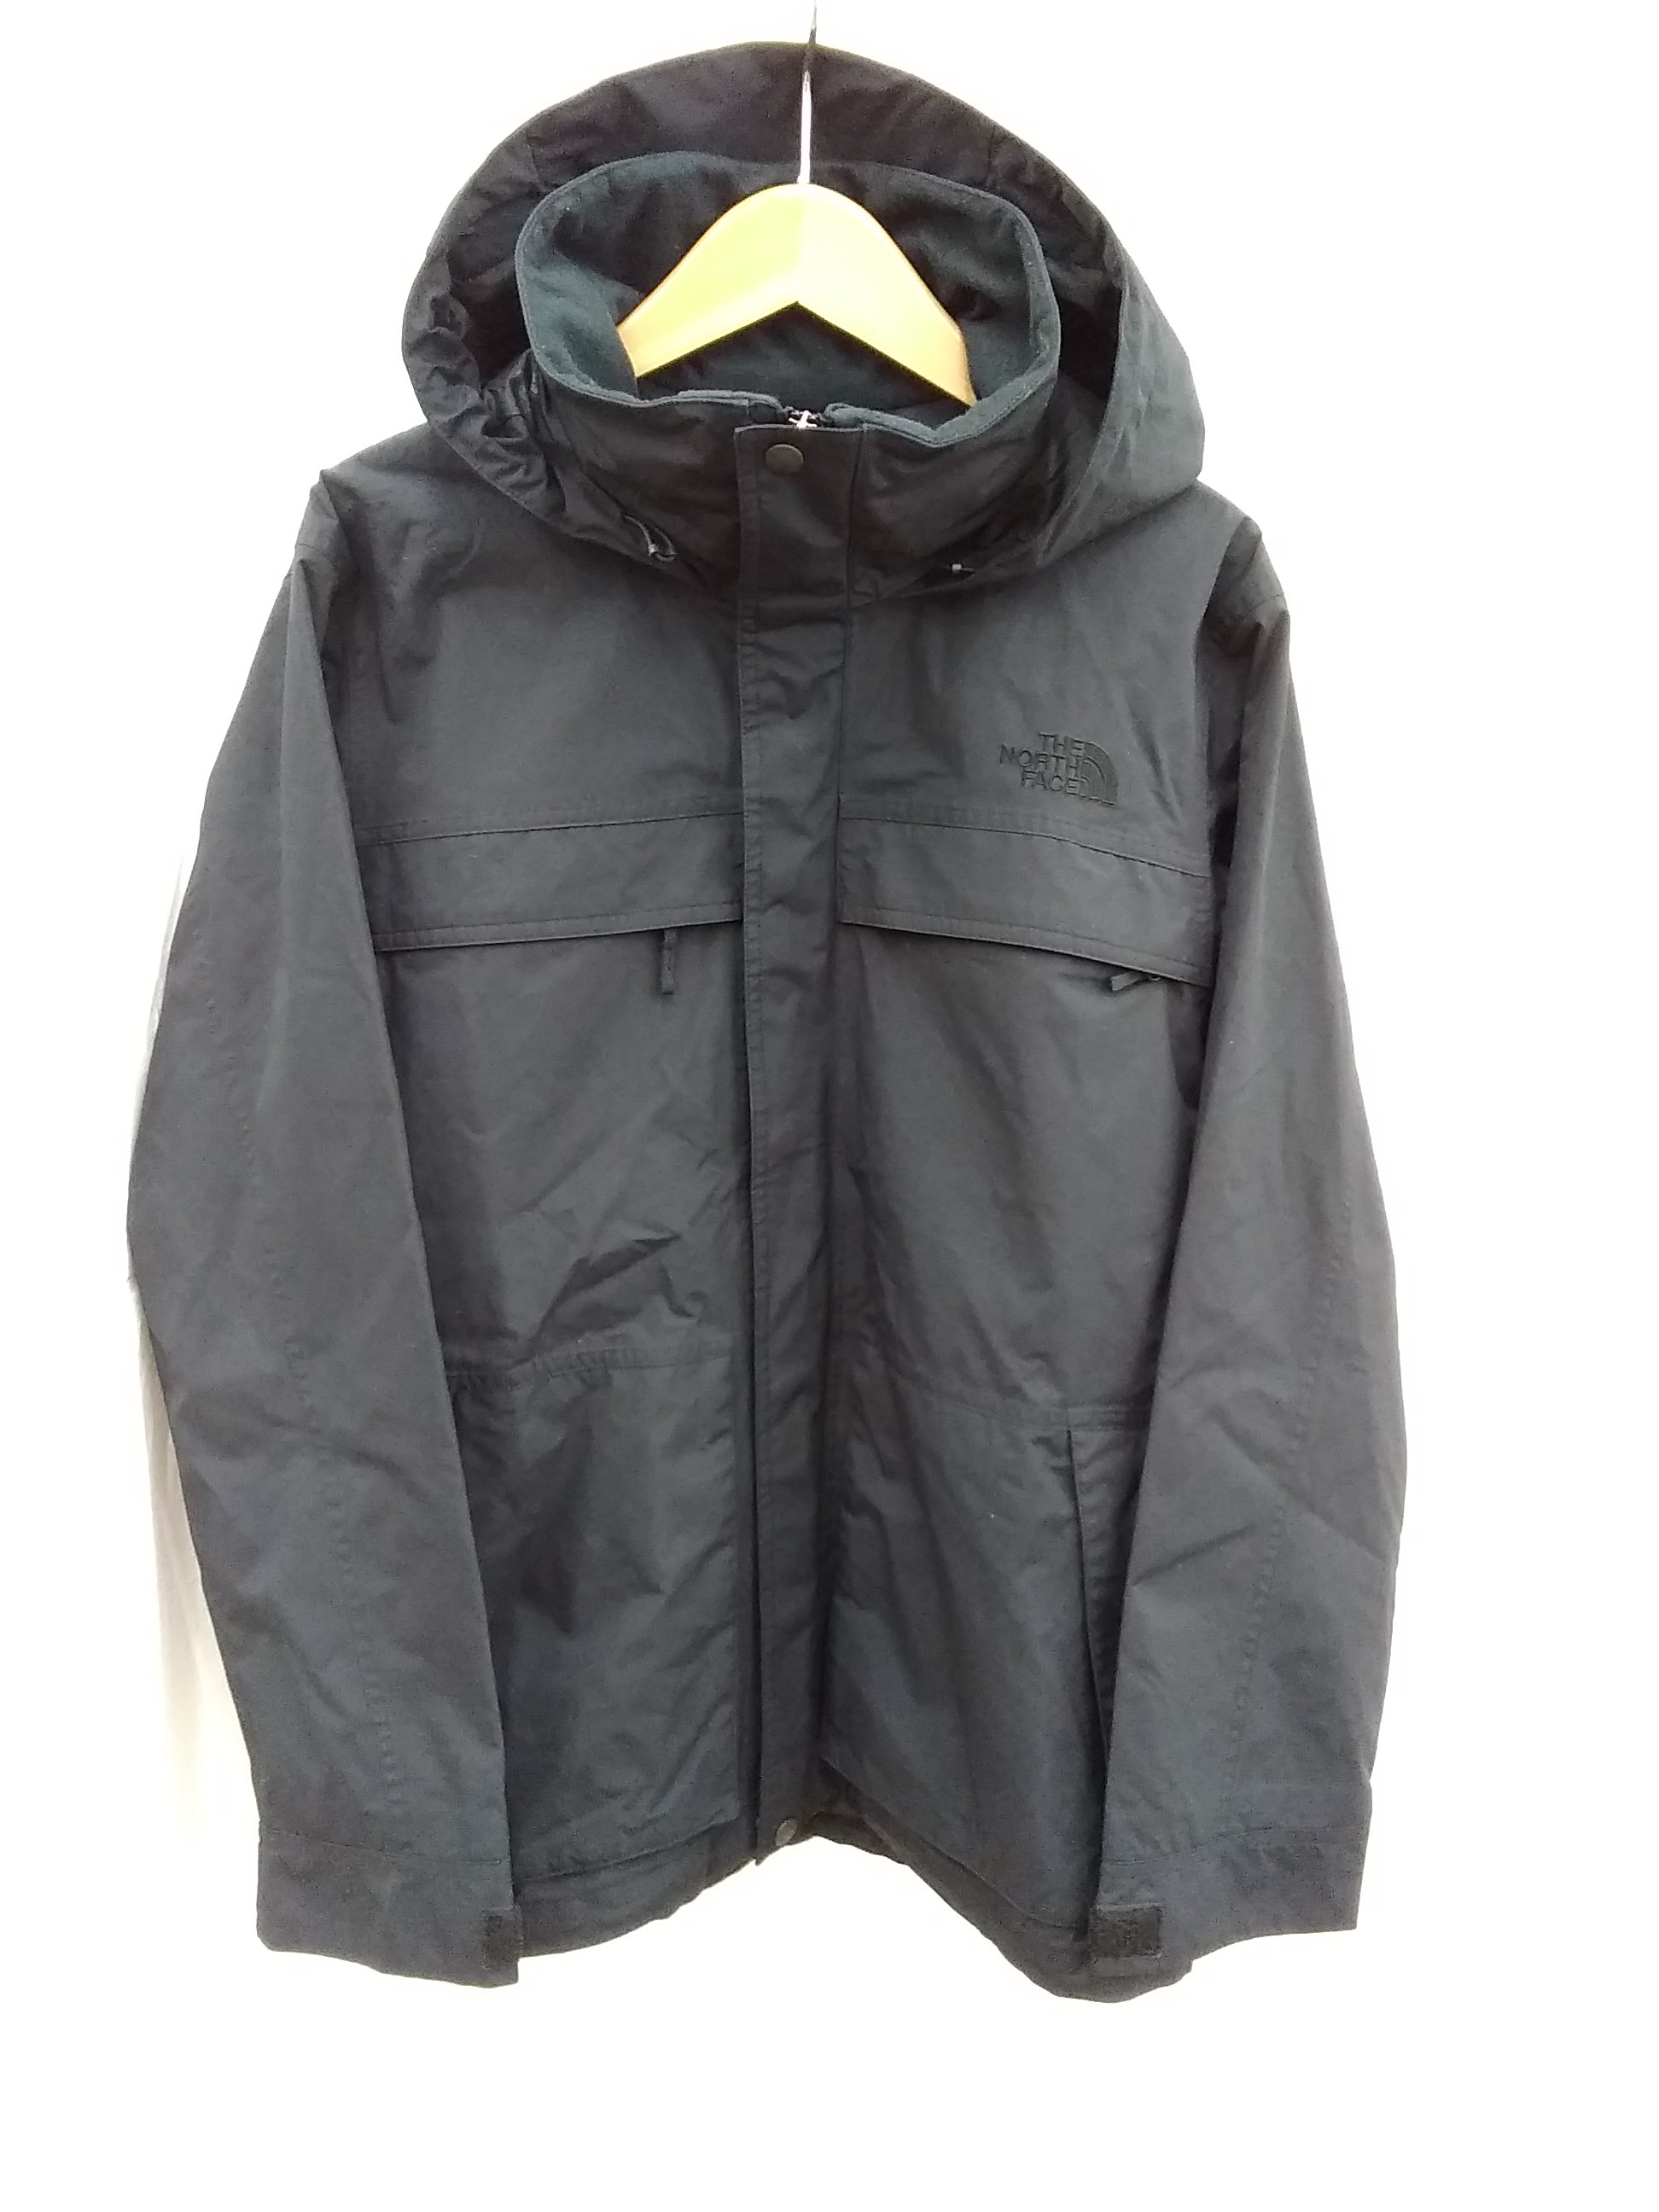 MAKALU TRICLIMATE JACKET|THE NORTH FACE